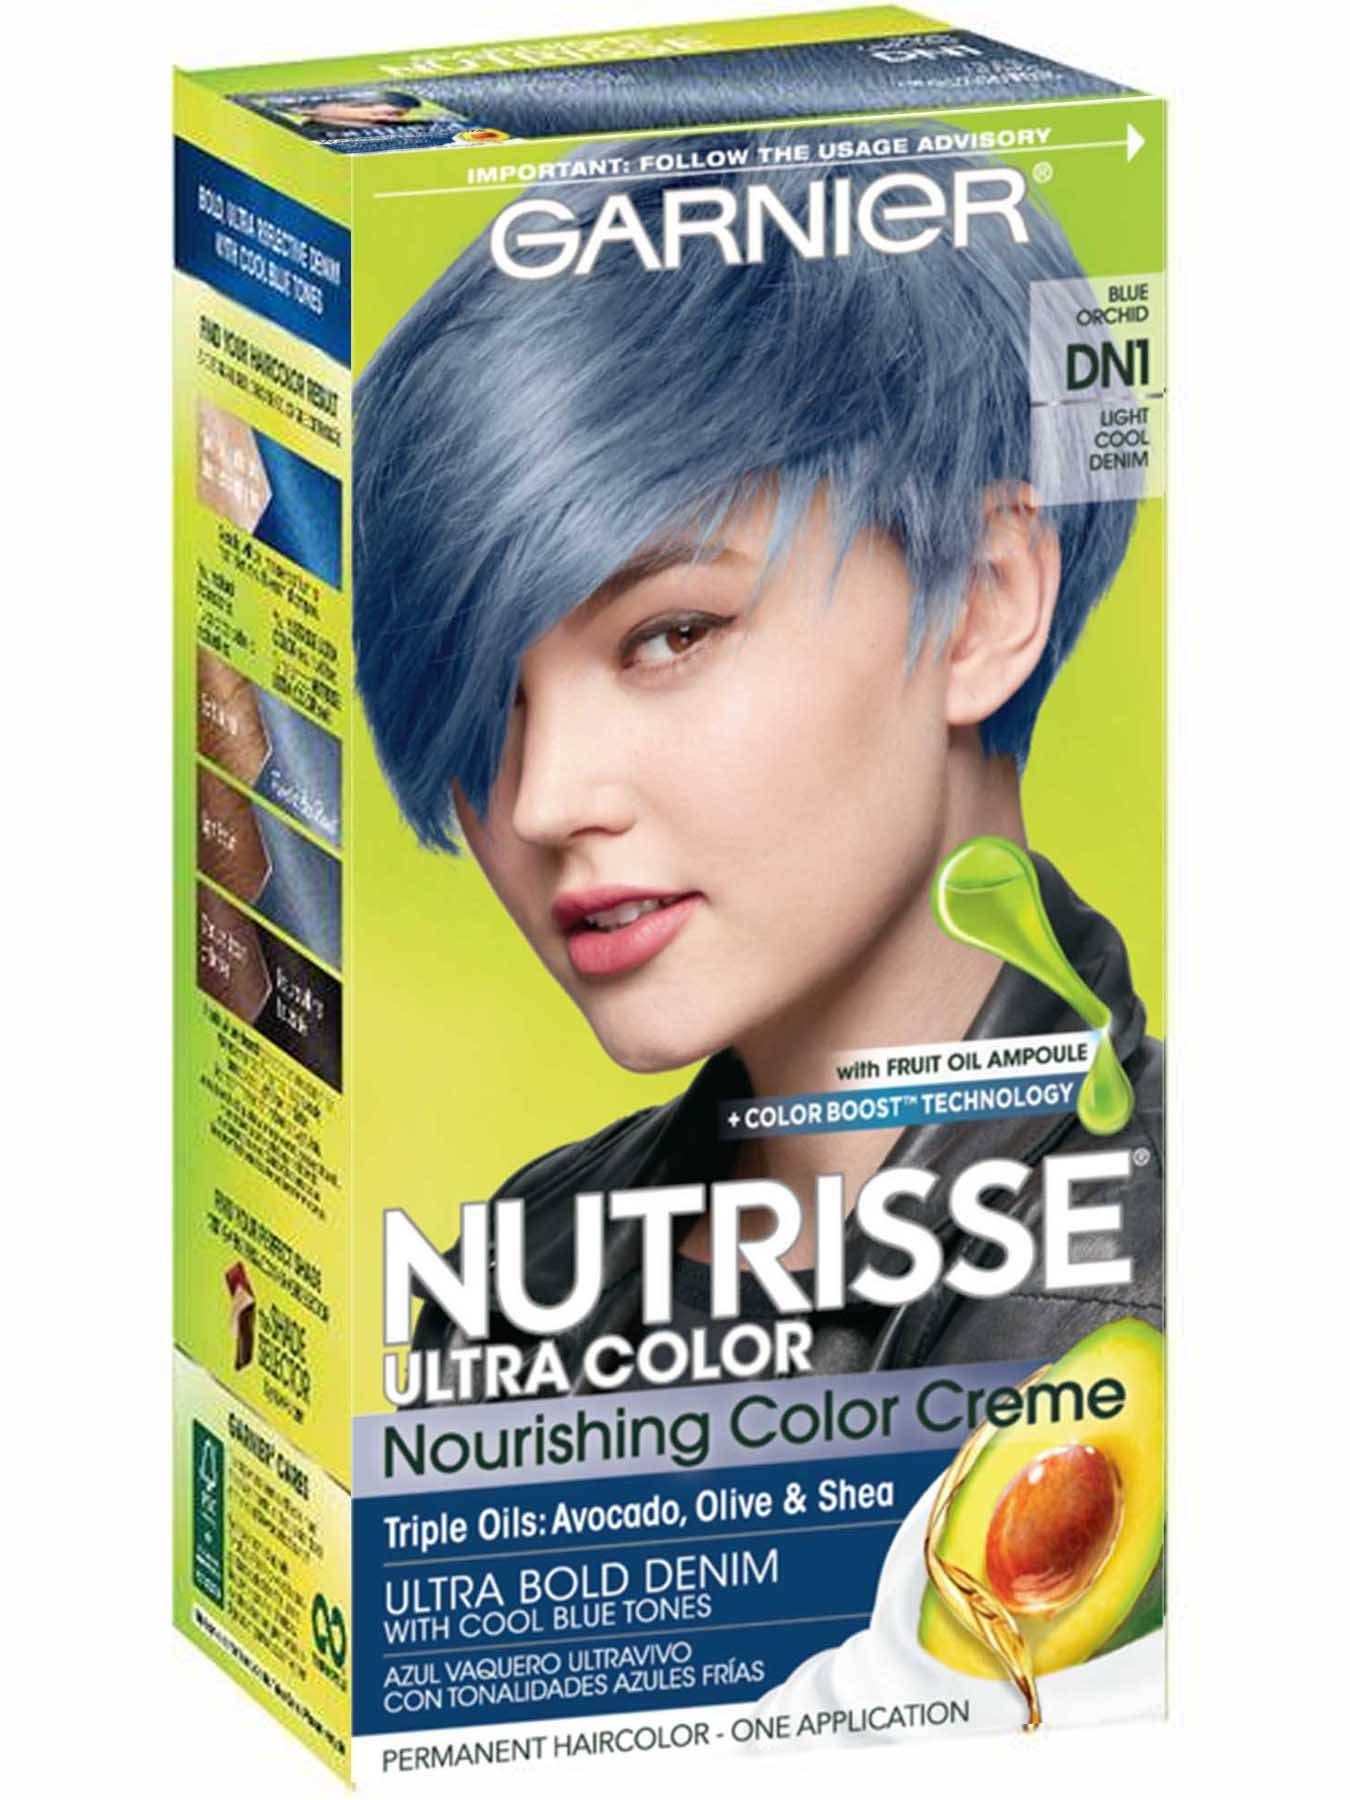 Cool Colors To Dye Your Hair: Light Cool Denim Hair Color